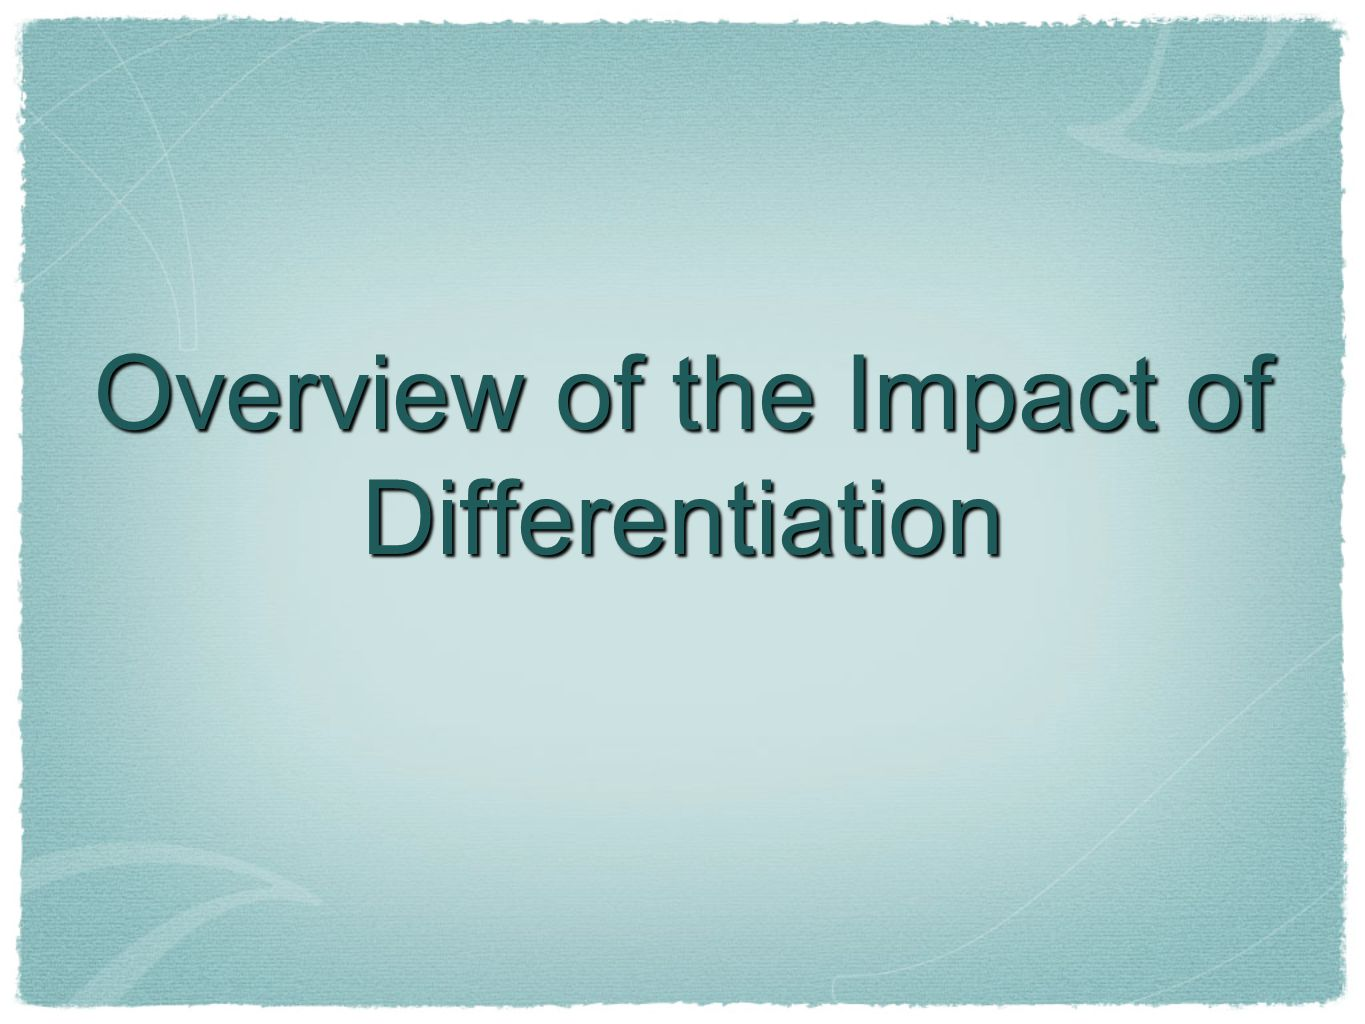 Overview of the Impact of Differentiation